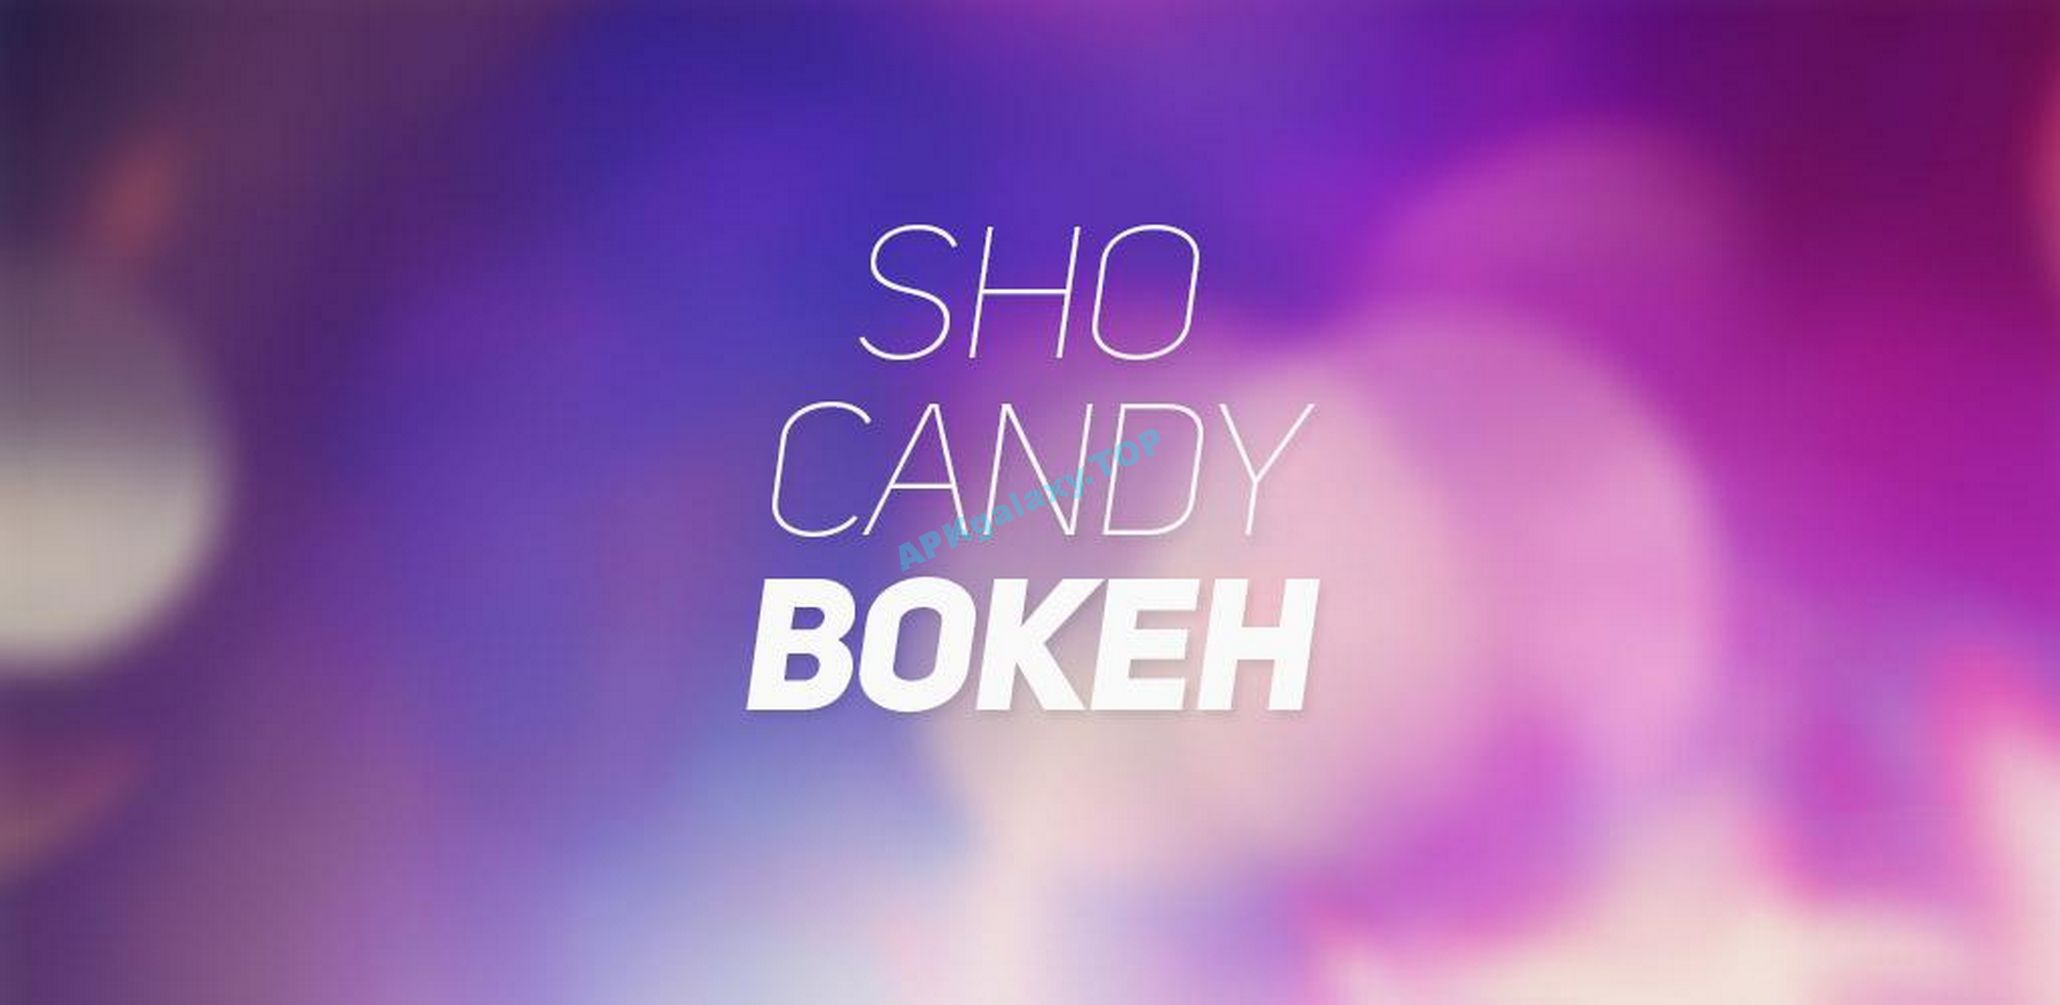 ShoCandy-Bokeh Apk